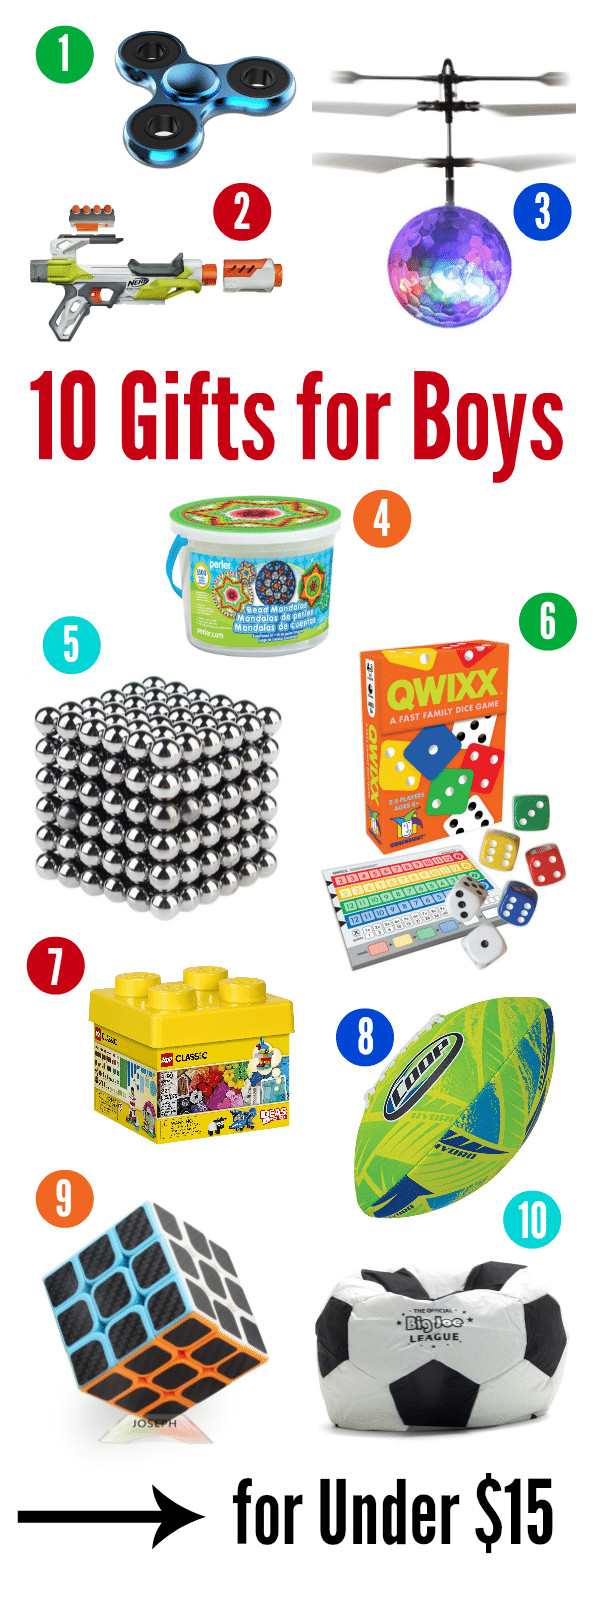 Best ideas about Boy Birthday Gifts Ideas . Save or Pin 10 Best Gifts for a 10 Year Old Boy for Under $15 – Fun Now.